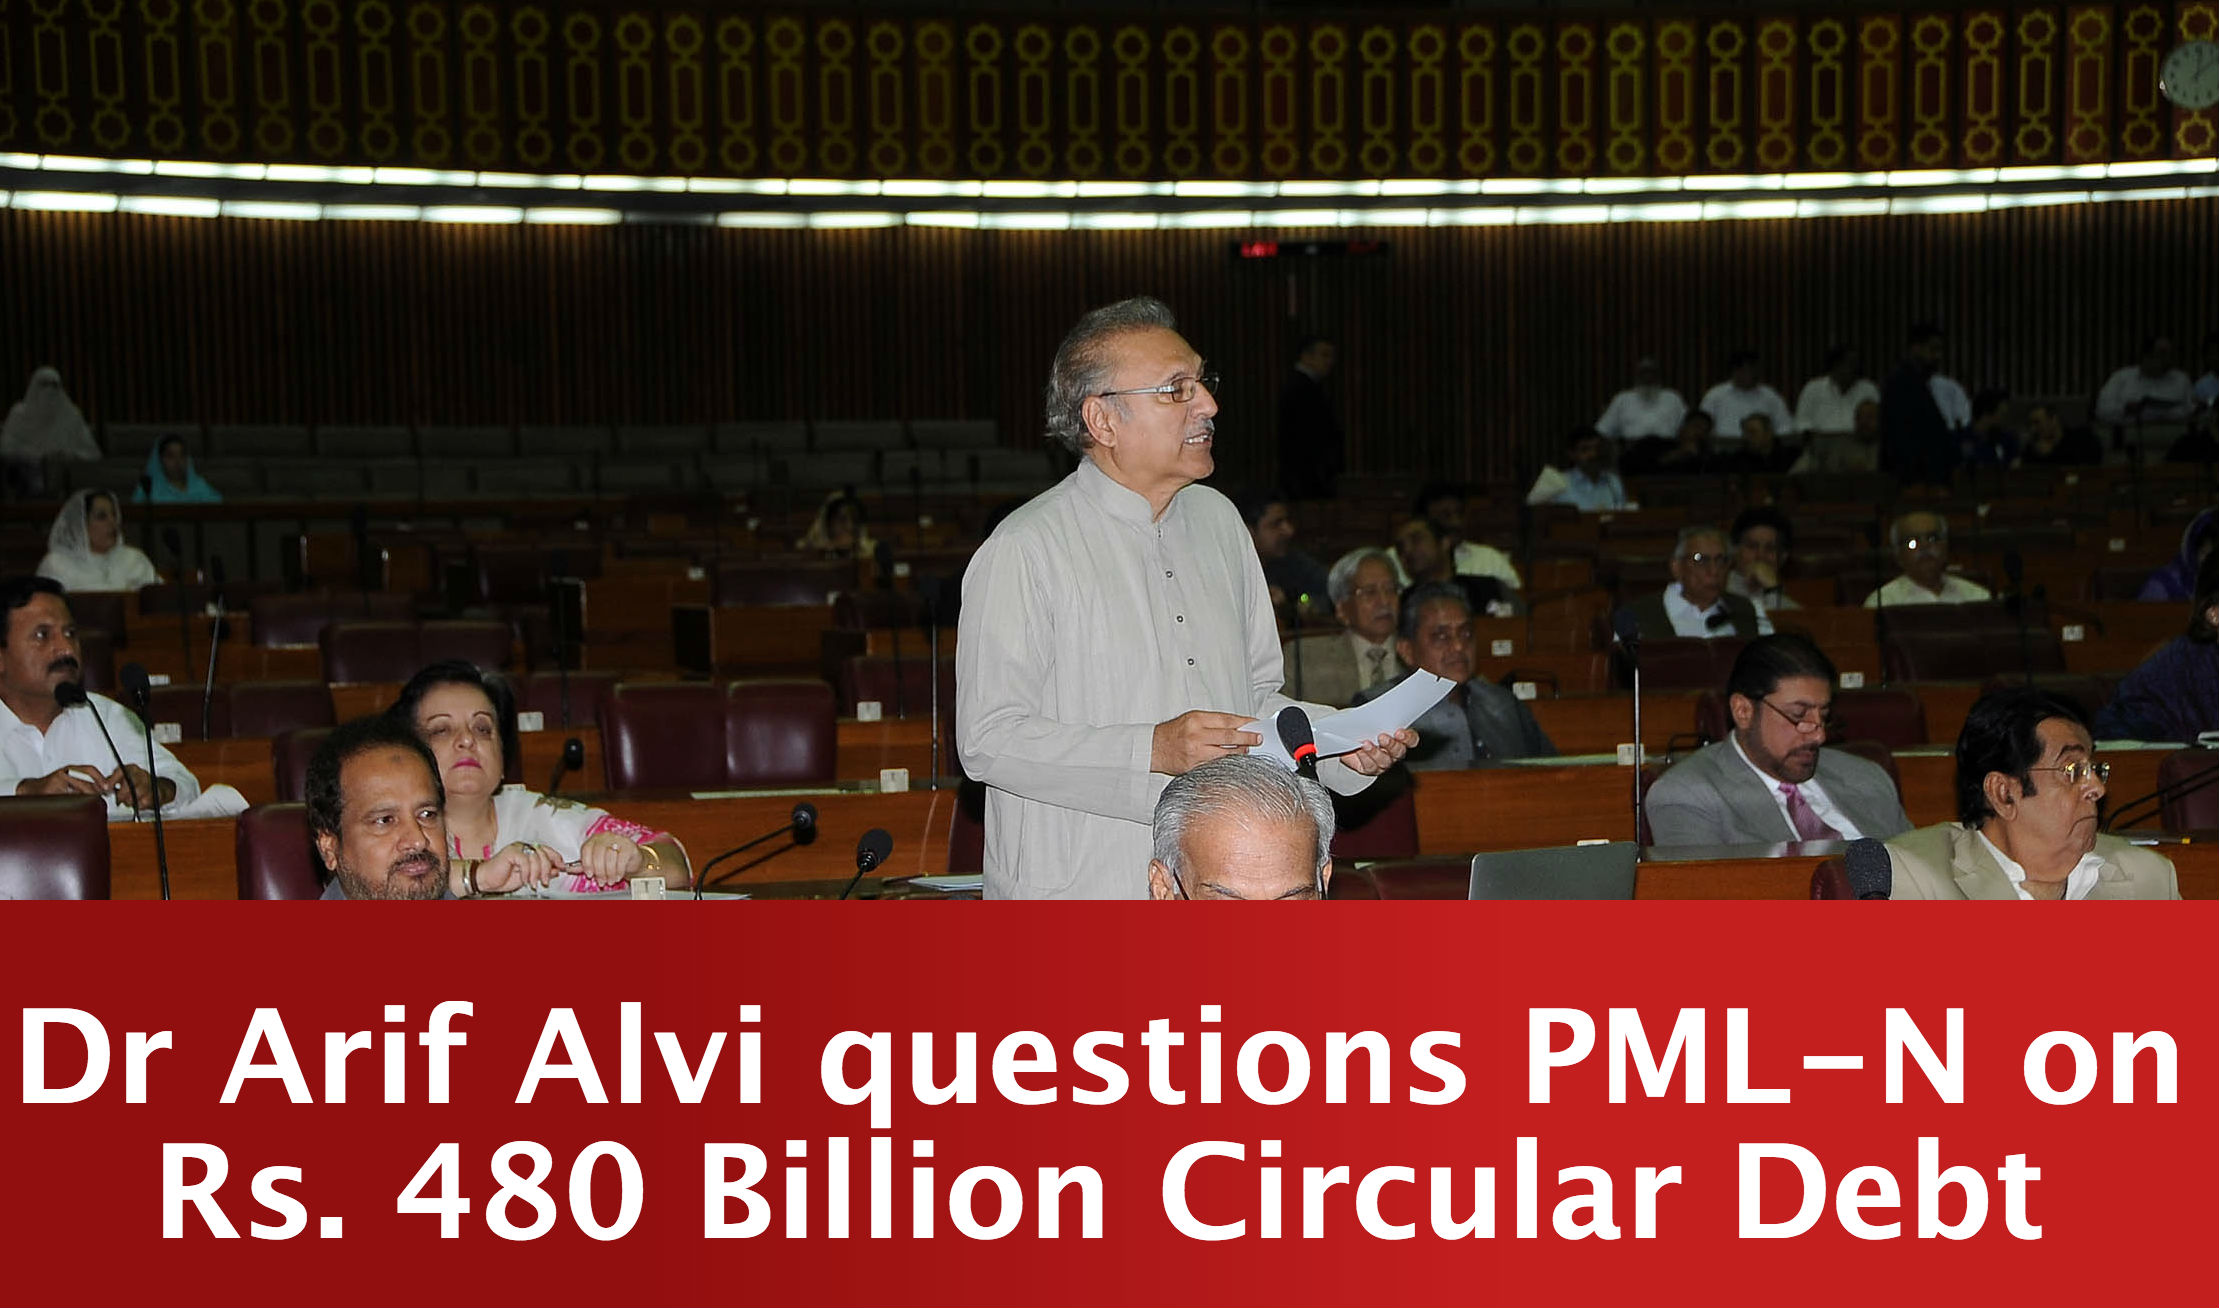 Arif_Quizzes_PML_on_Circular_debt.jpg